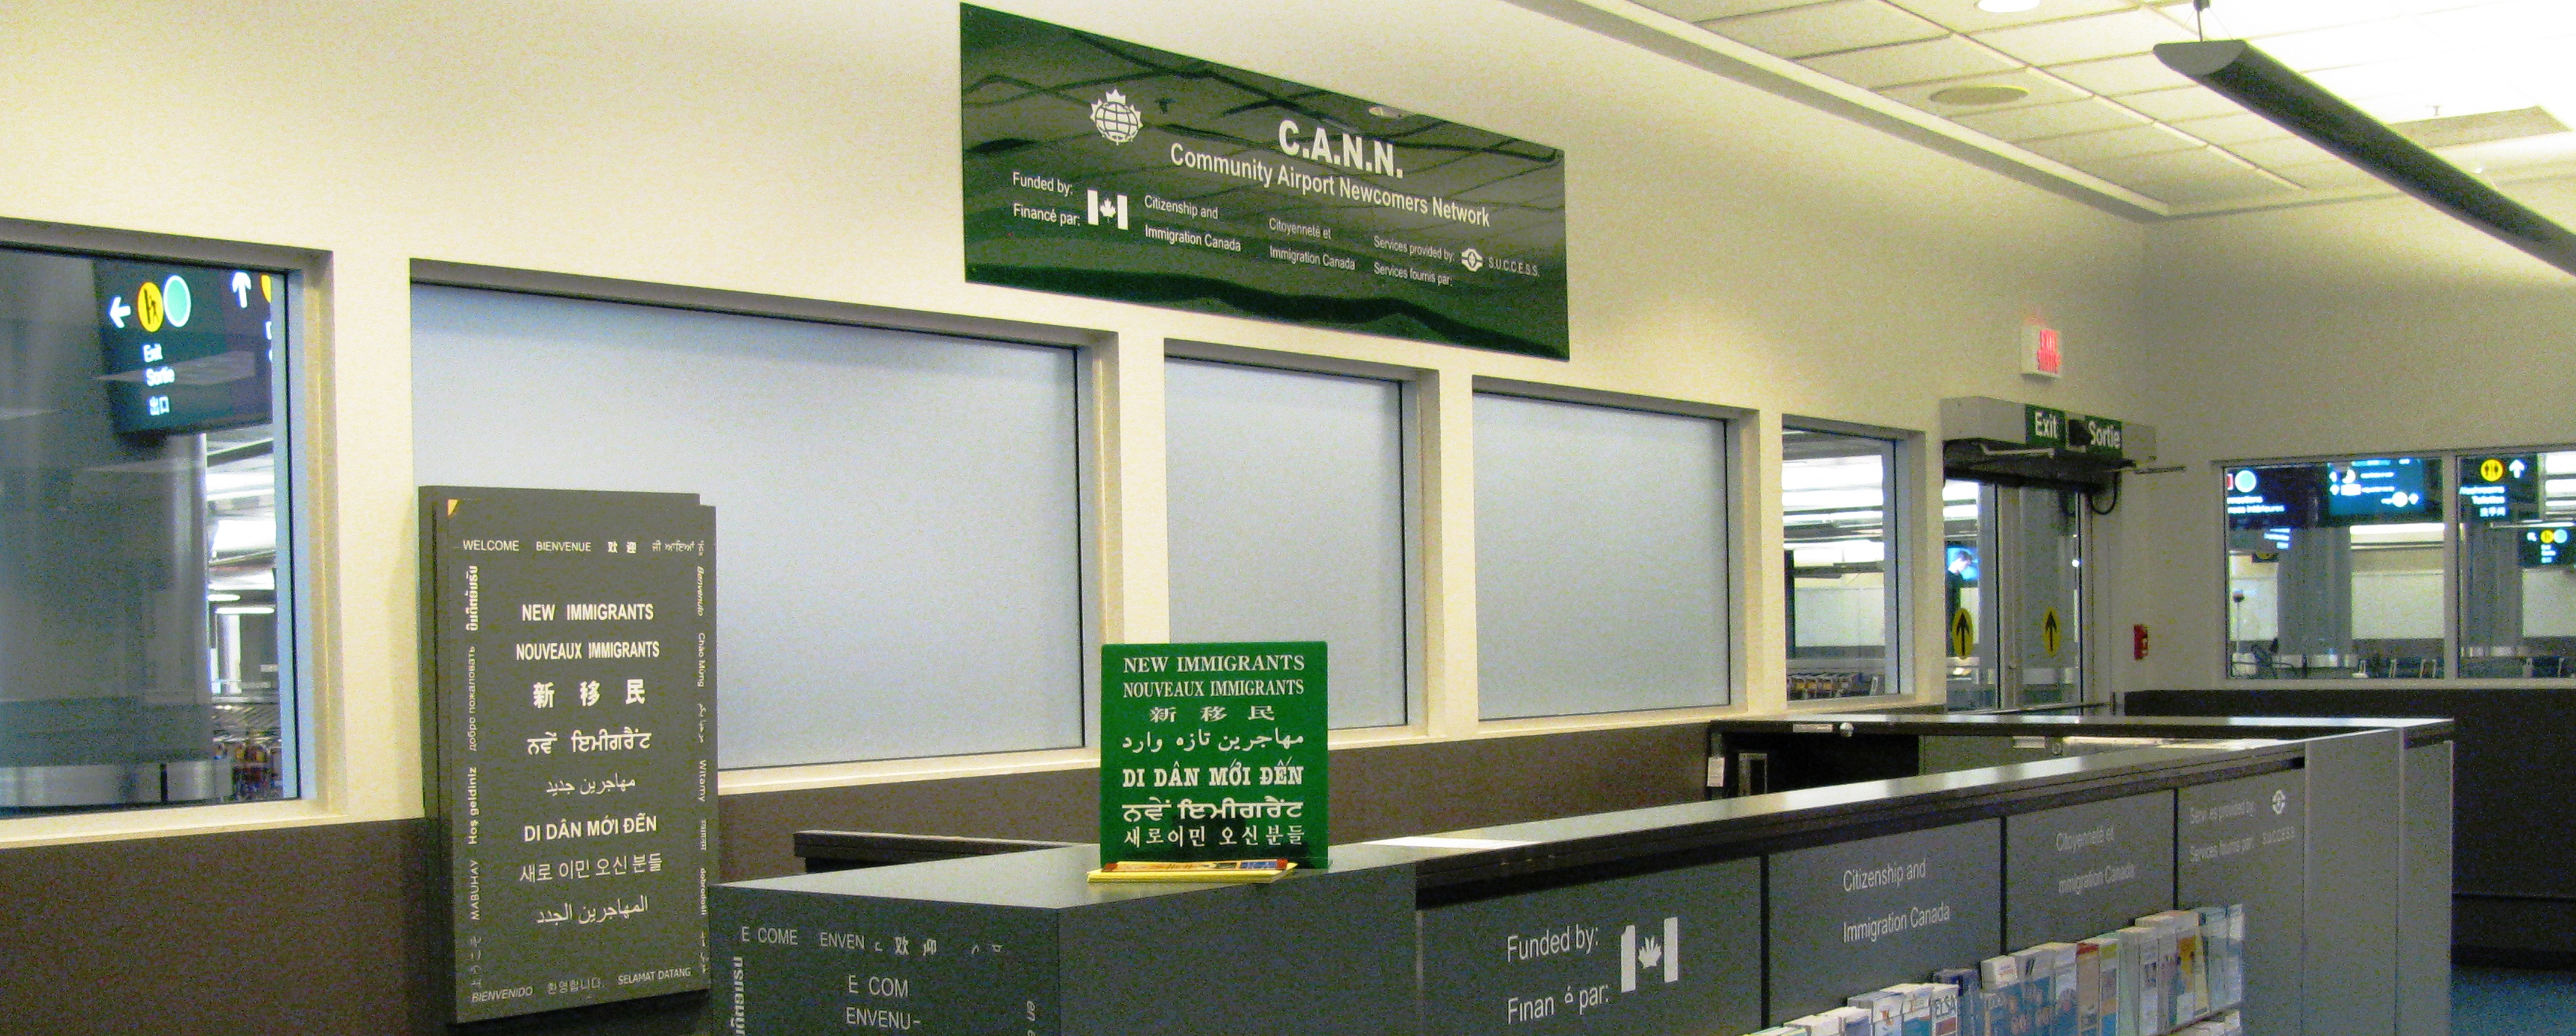 Picture of Community Airport Newcomers Network kiosk